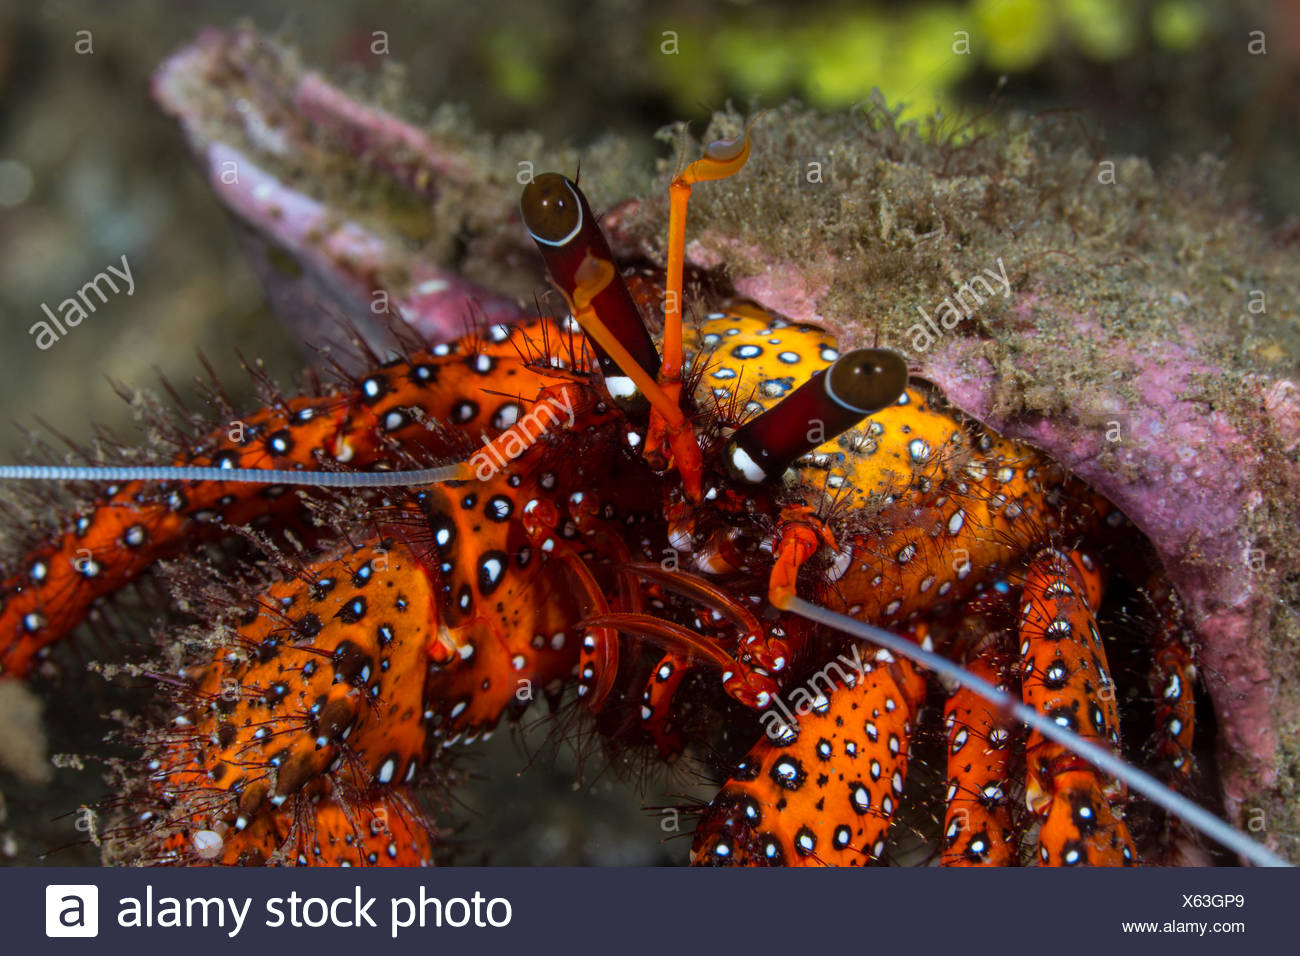 White-spotted Hermit Crab, Dardanus megistos, Ambon, Indonesia - Stock Image